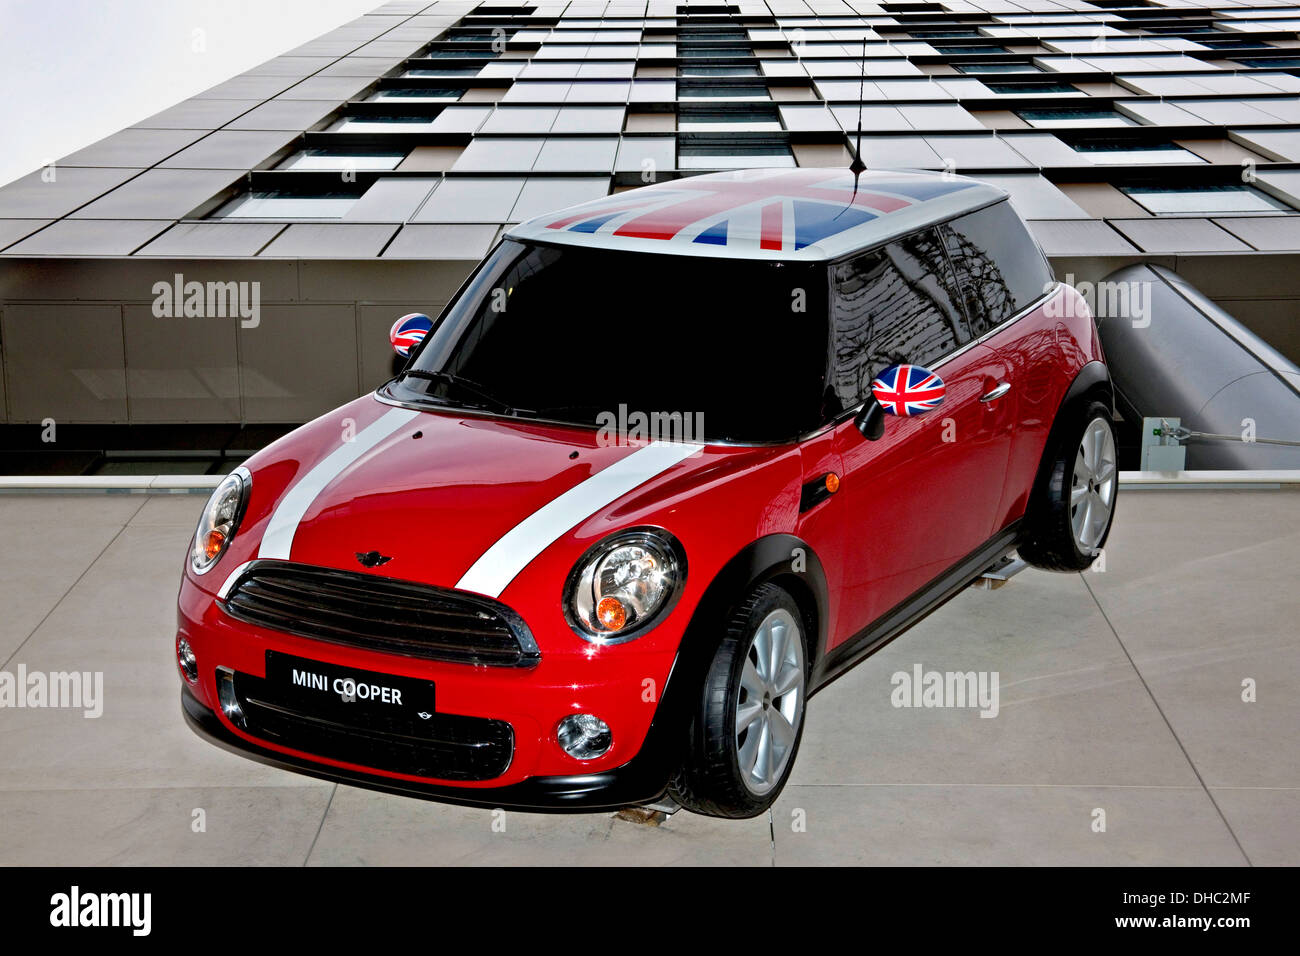 Mini cooper car with union flag on roof and side mirrors, hung on wall at Westlake shopping center Stratford London - Stock Image